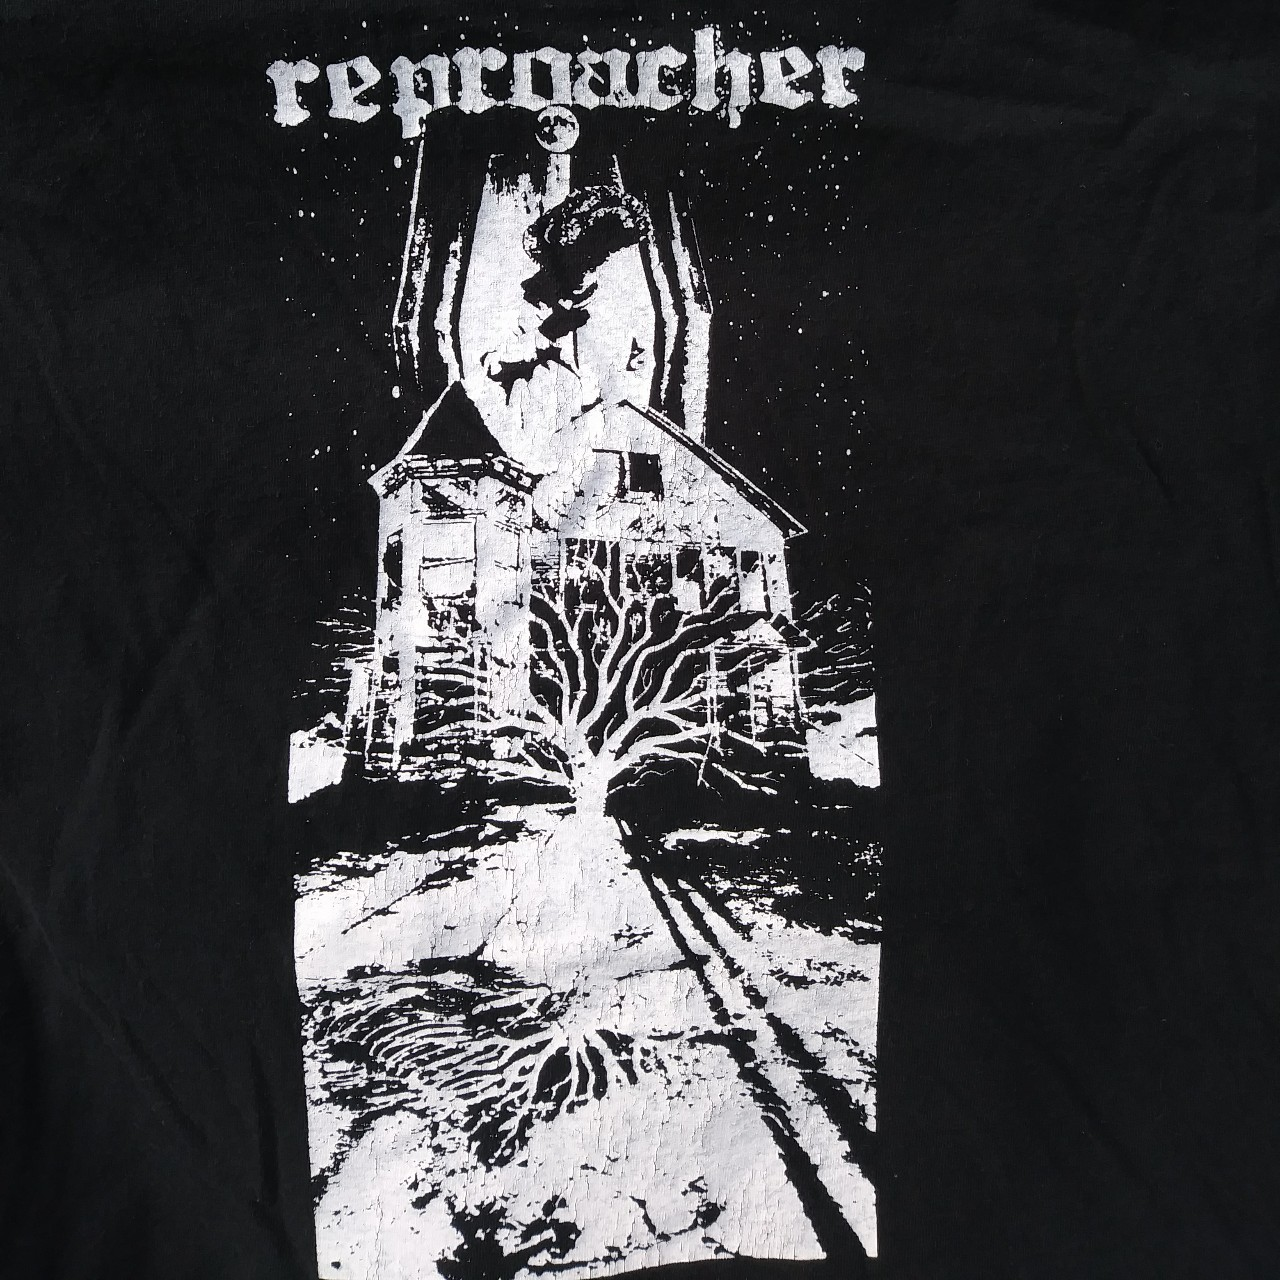 Product Image 1 - Reproacher band shirt. Fairly loved